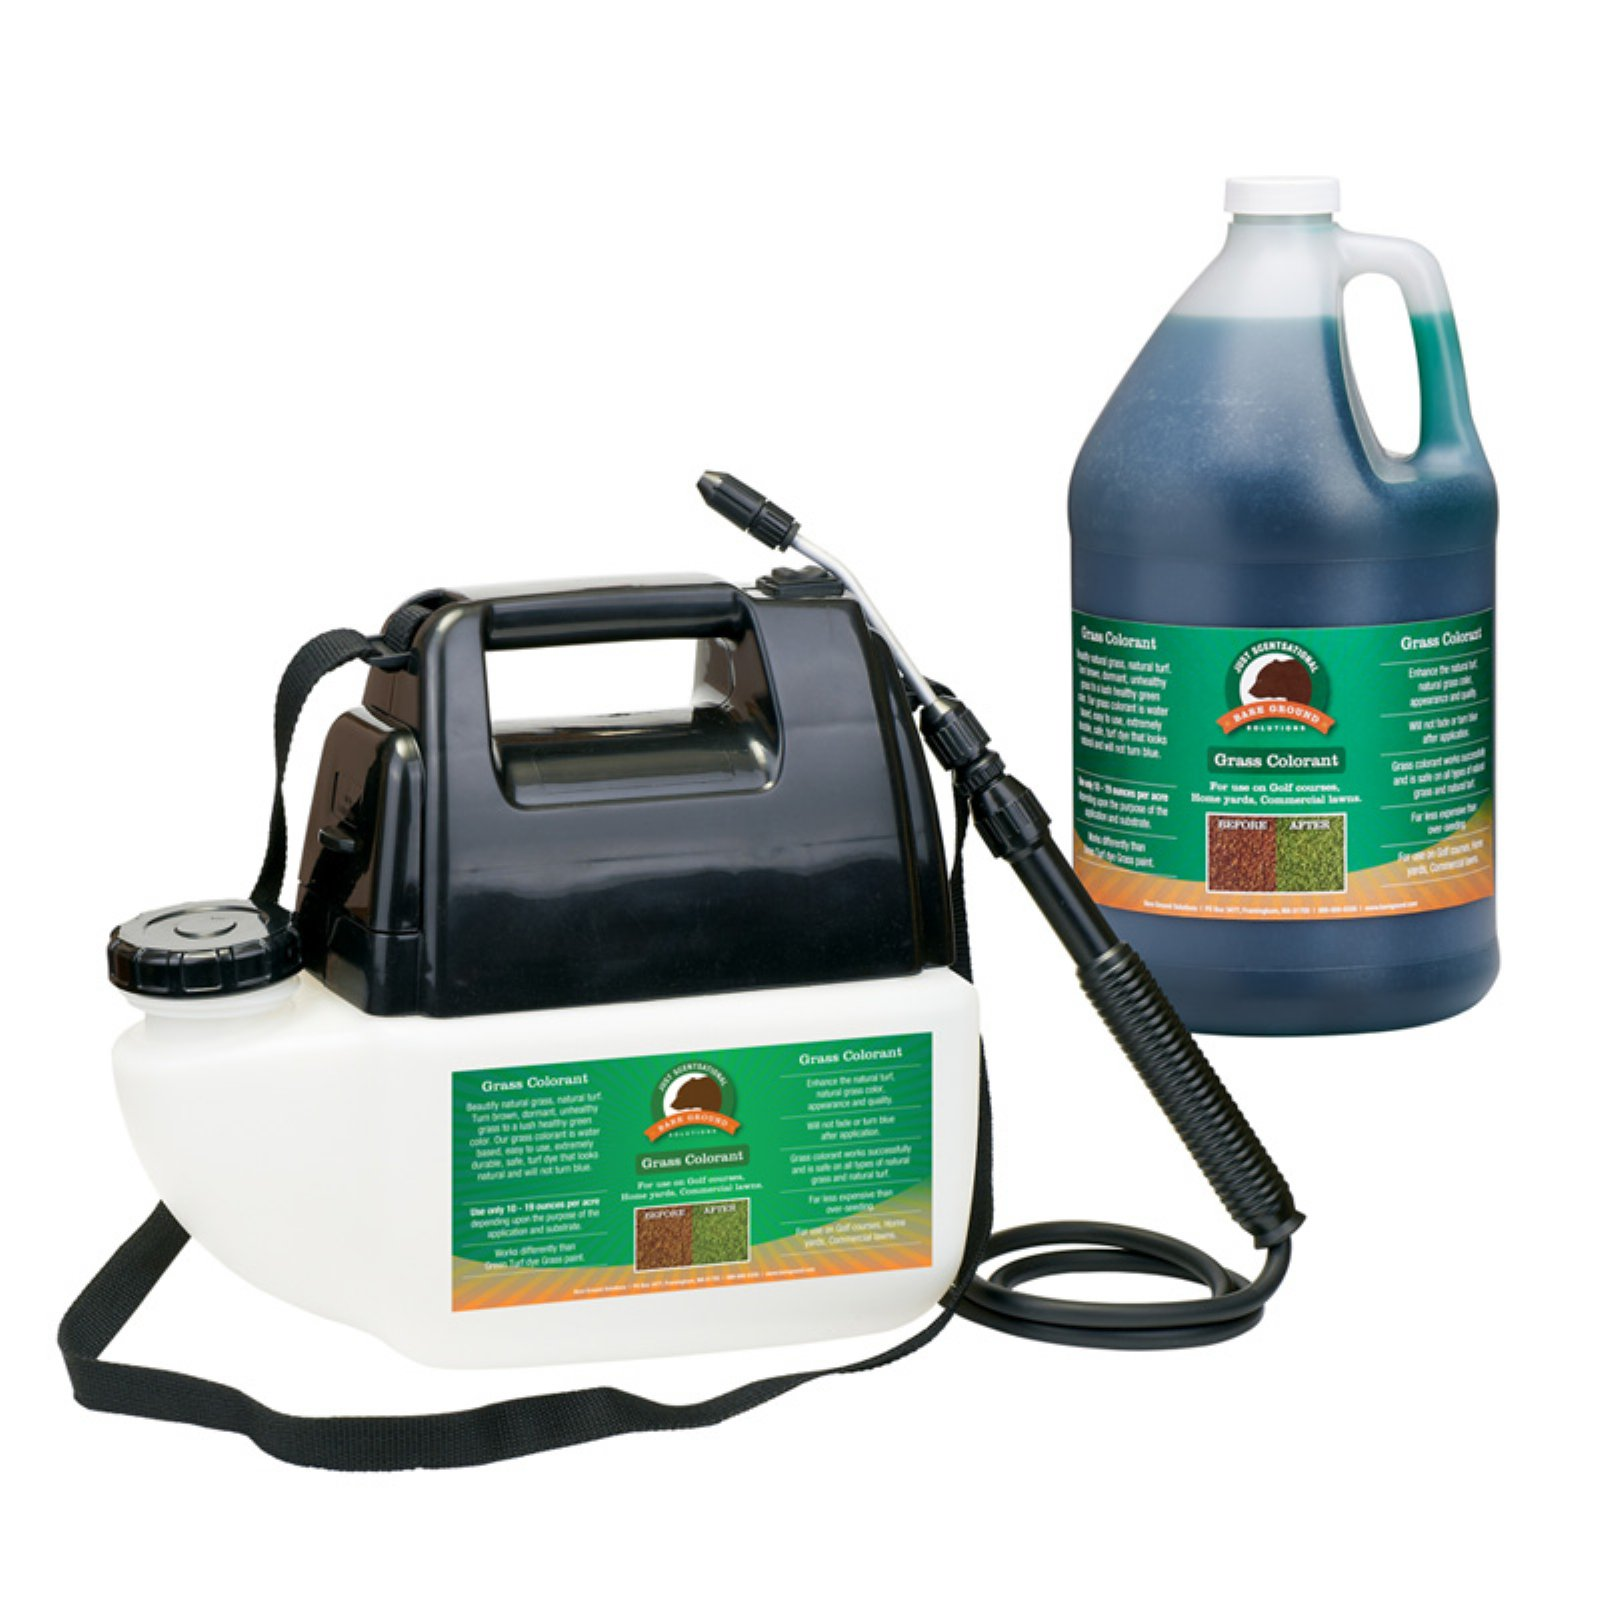 Just Scentsational Green Up Grass Colorant with Battery Powered Sprayer by Bare Ground Systems